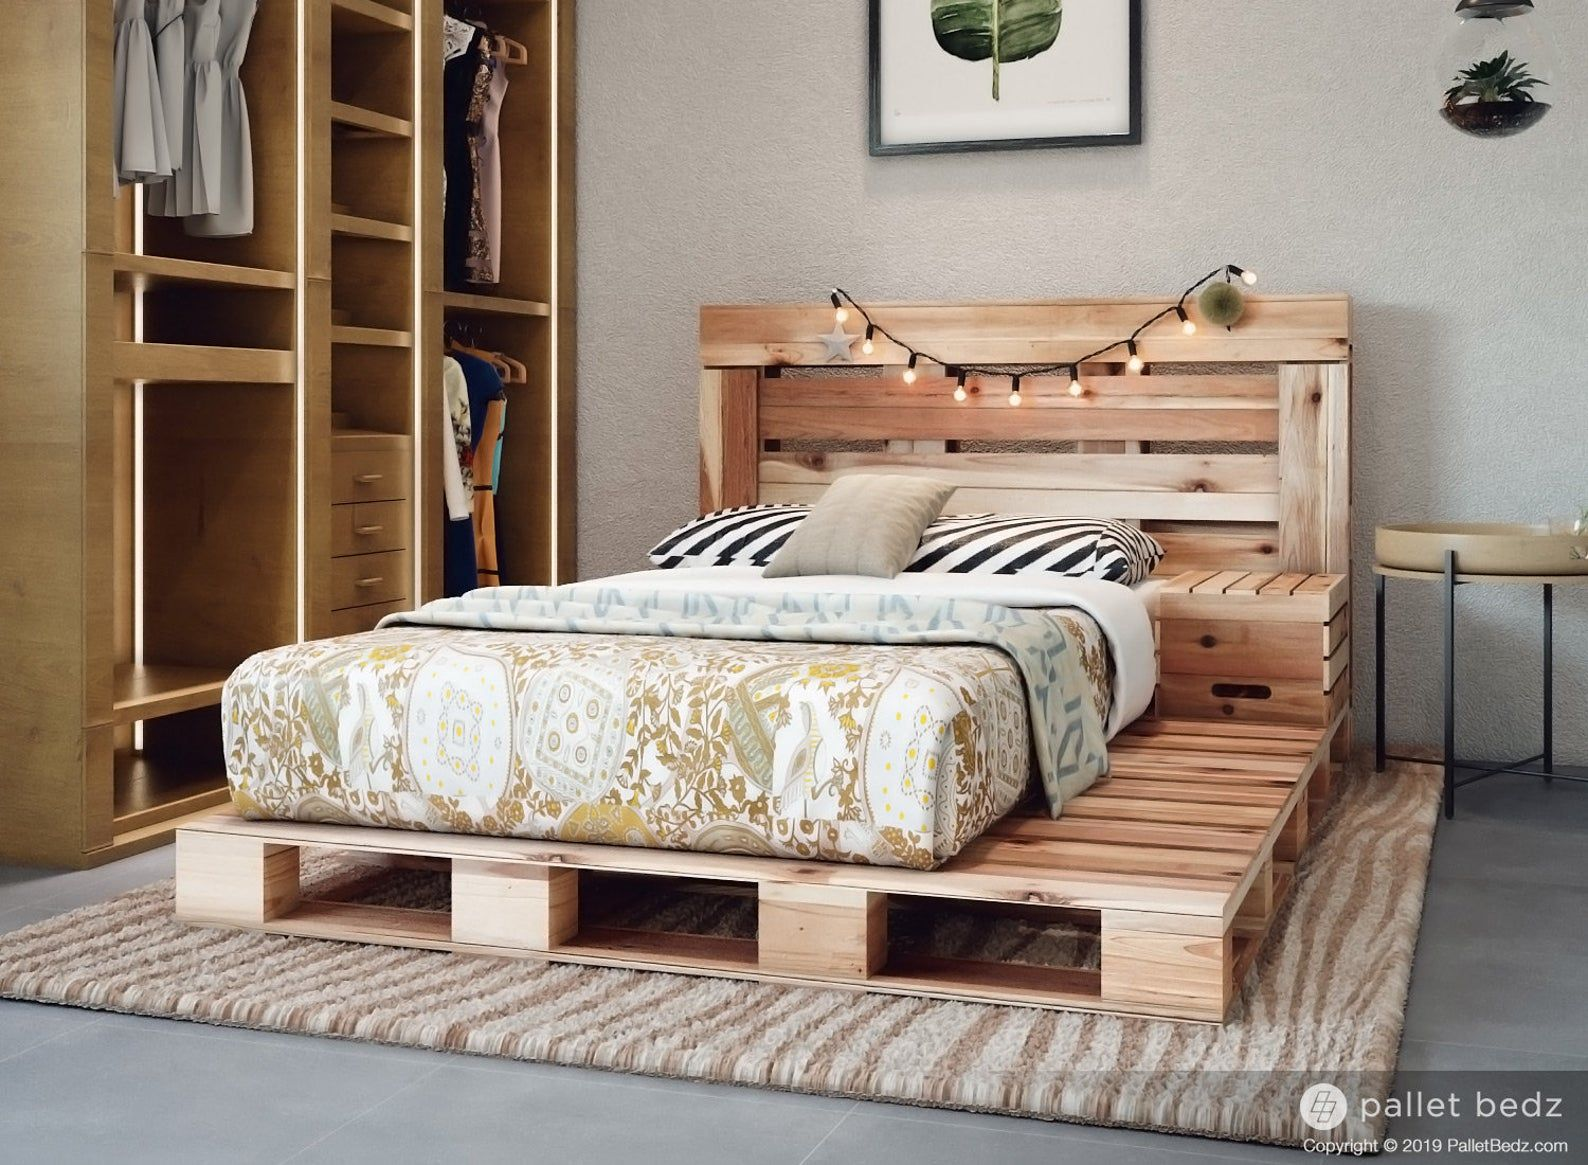 Pallet Bed The Twin Size Includes Headboard And Platform Pallet Bed Frames Pallet Furniture Bedroom Wood Pallet Bed Frame